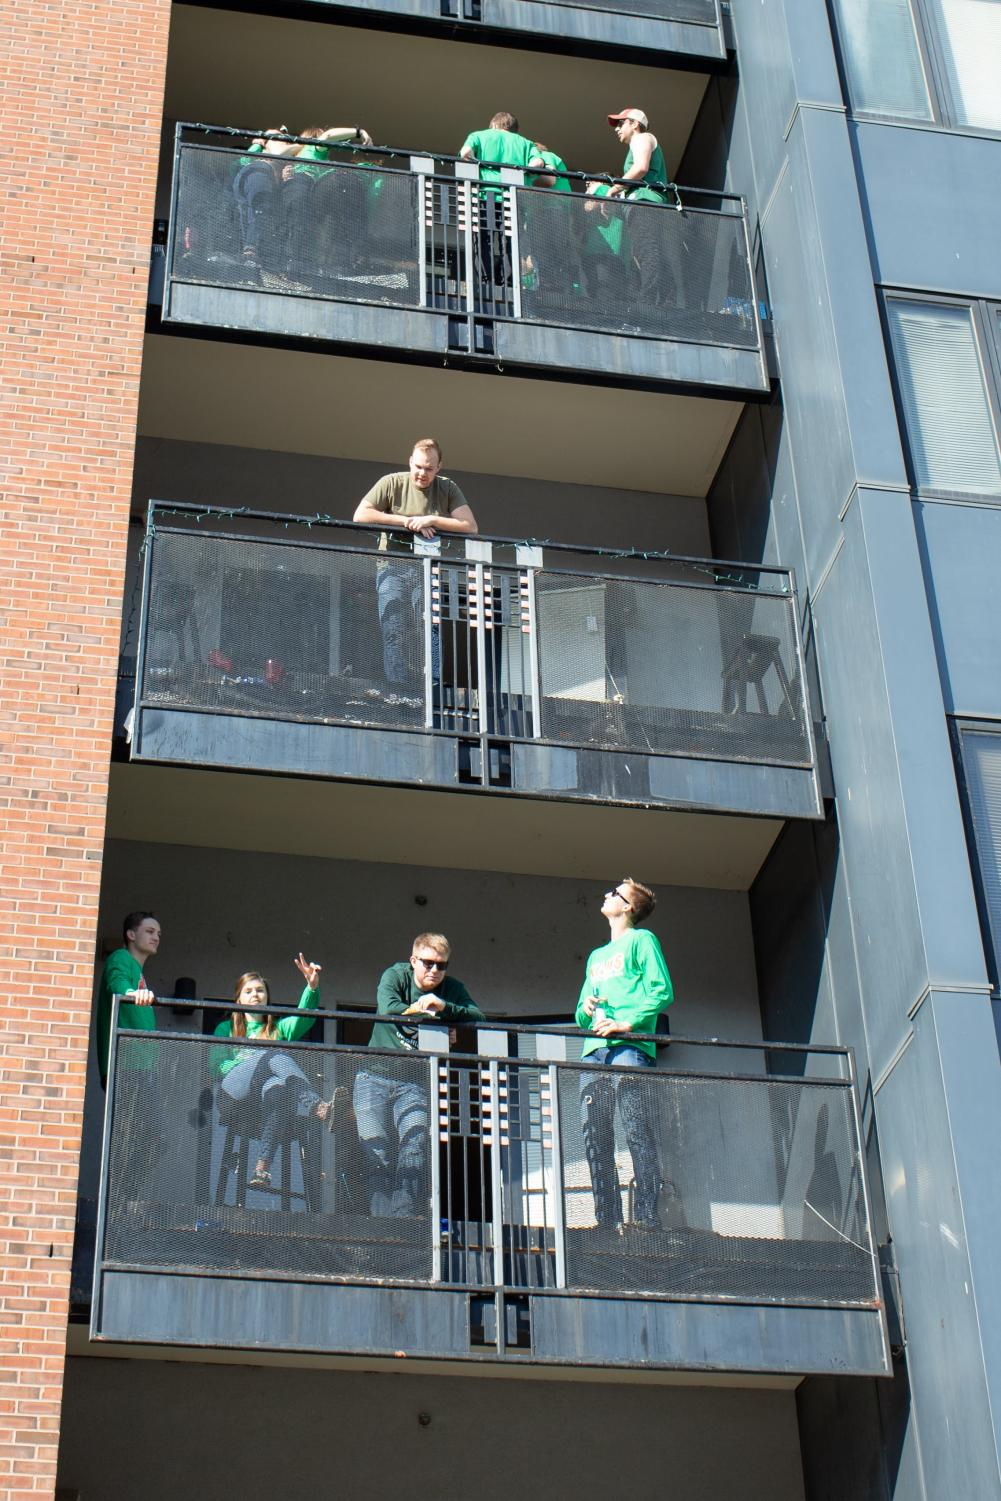 Participants+celebrate+Unofficial+on+their+balconies+during+Unofficial+on+Friday.